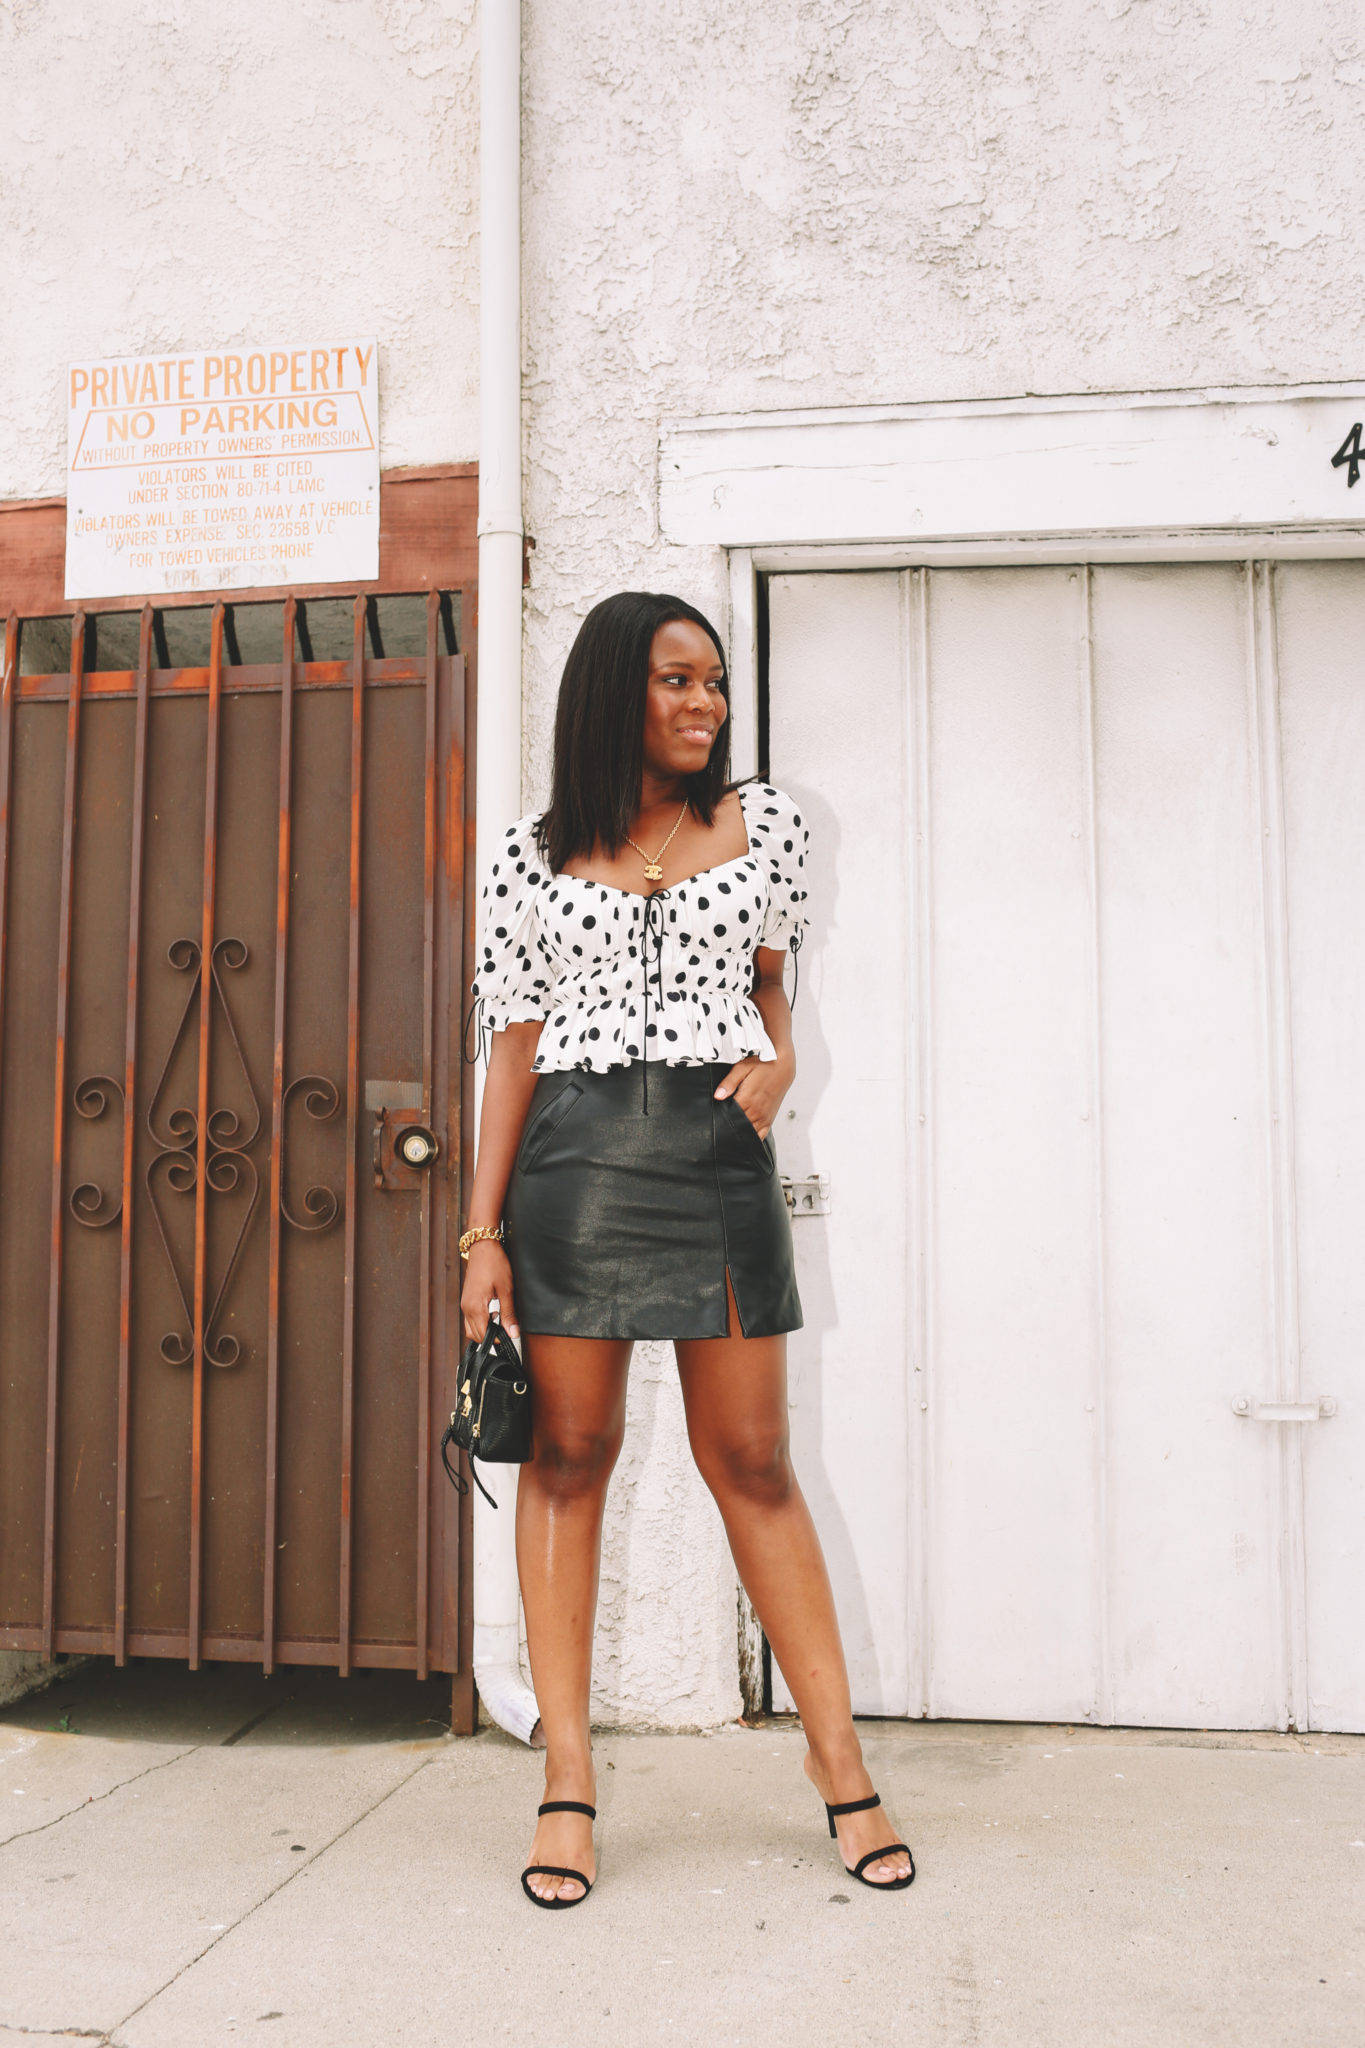 HOW TO WEAR DESIGNER CLOTHES ON A BUDGET - LE FAB CHIC